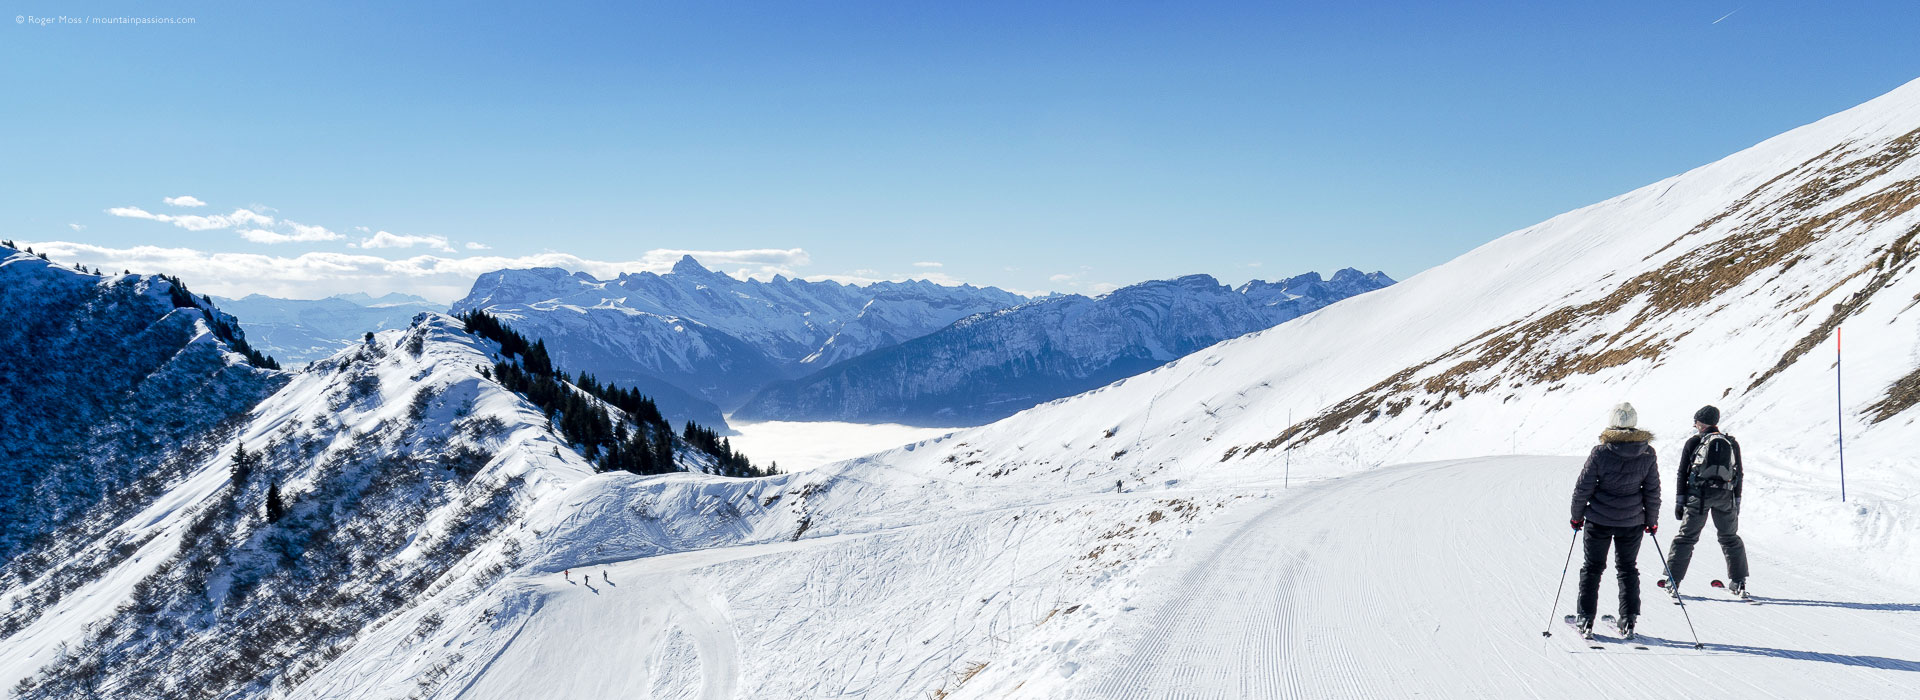 Wide view of two skiers on high mountain piste at Praz de Lys Sommand, French Alps.